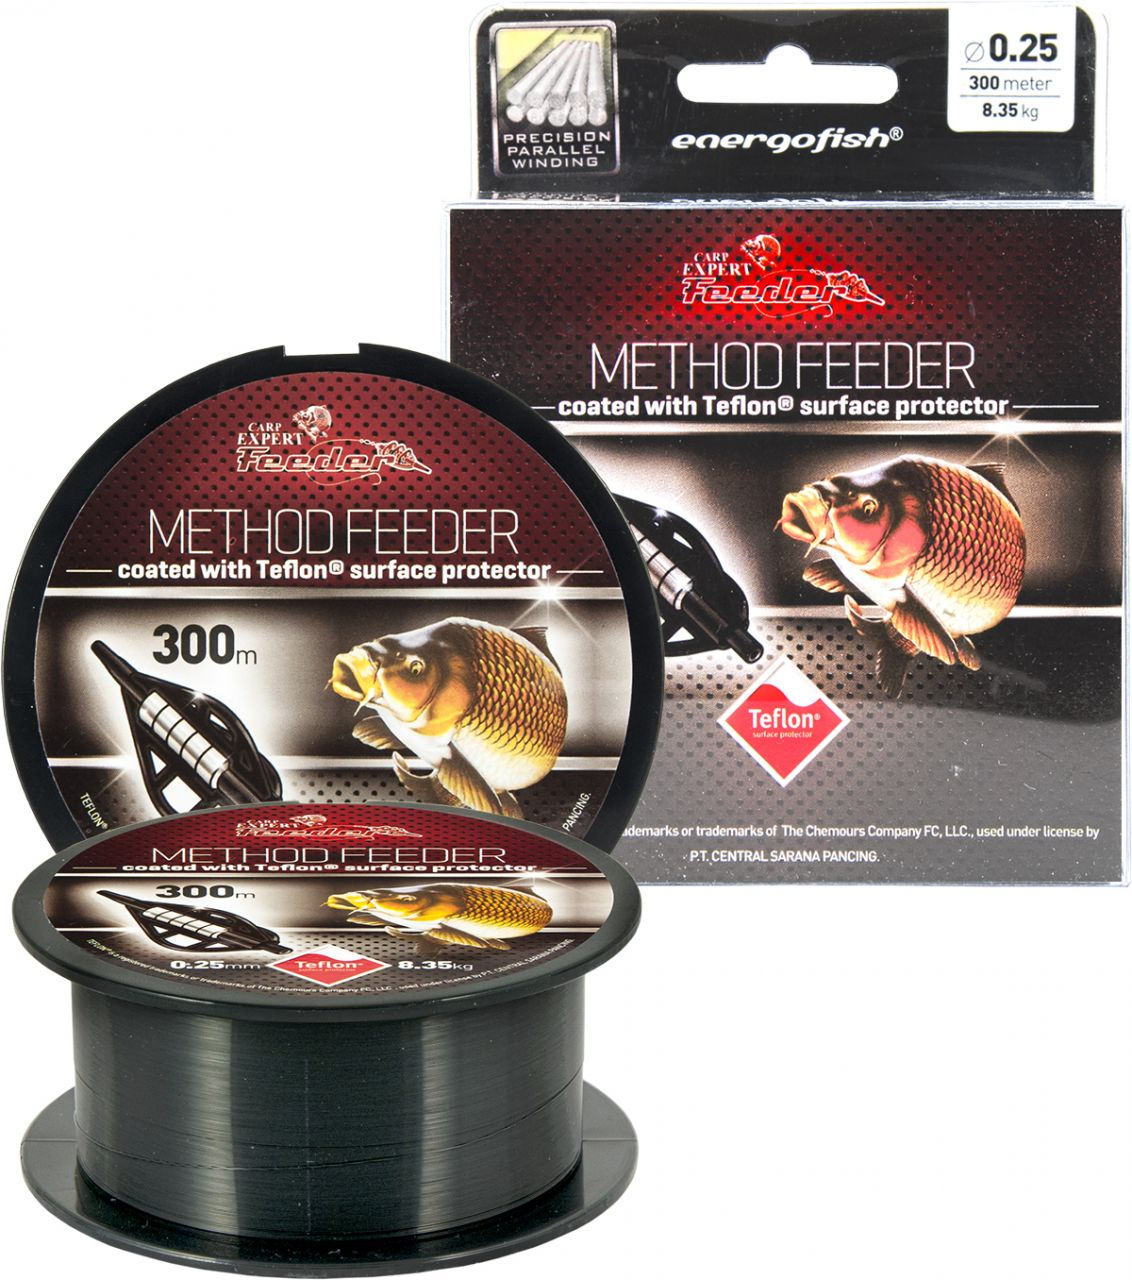 Energofish Carp Expert Method Feeder Teflon